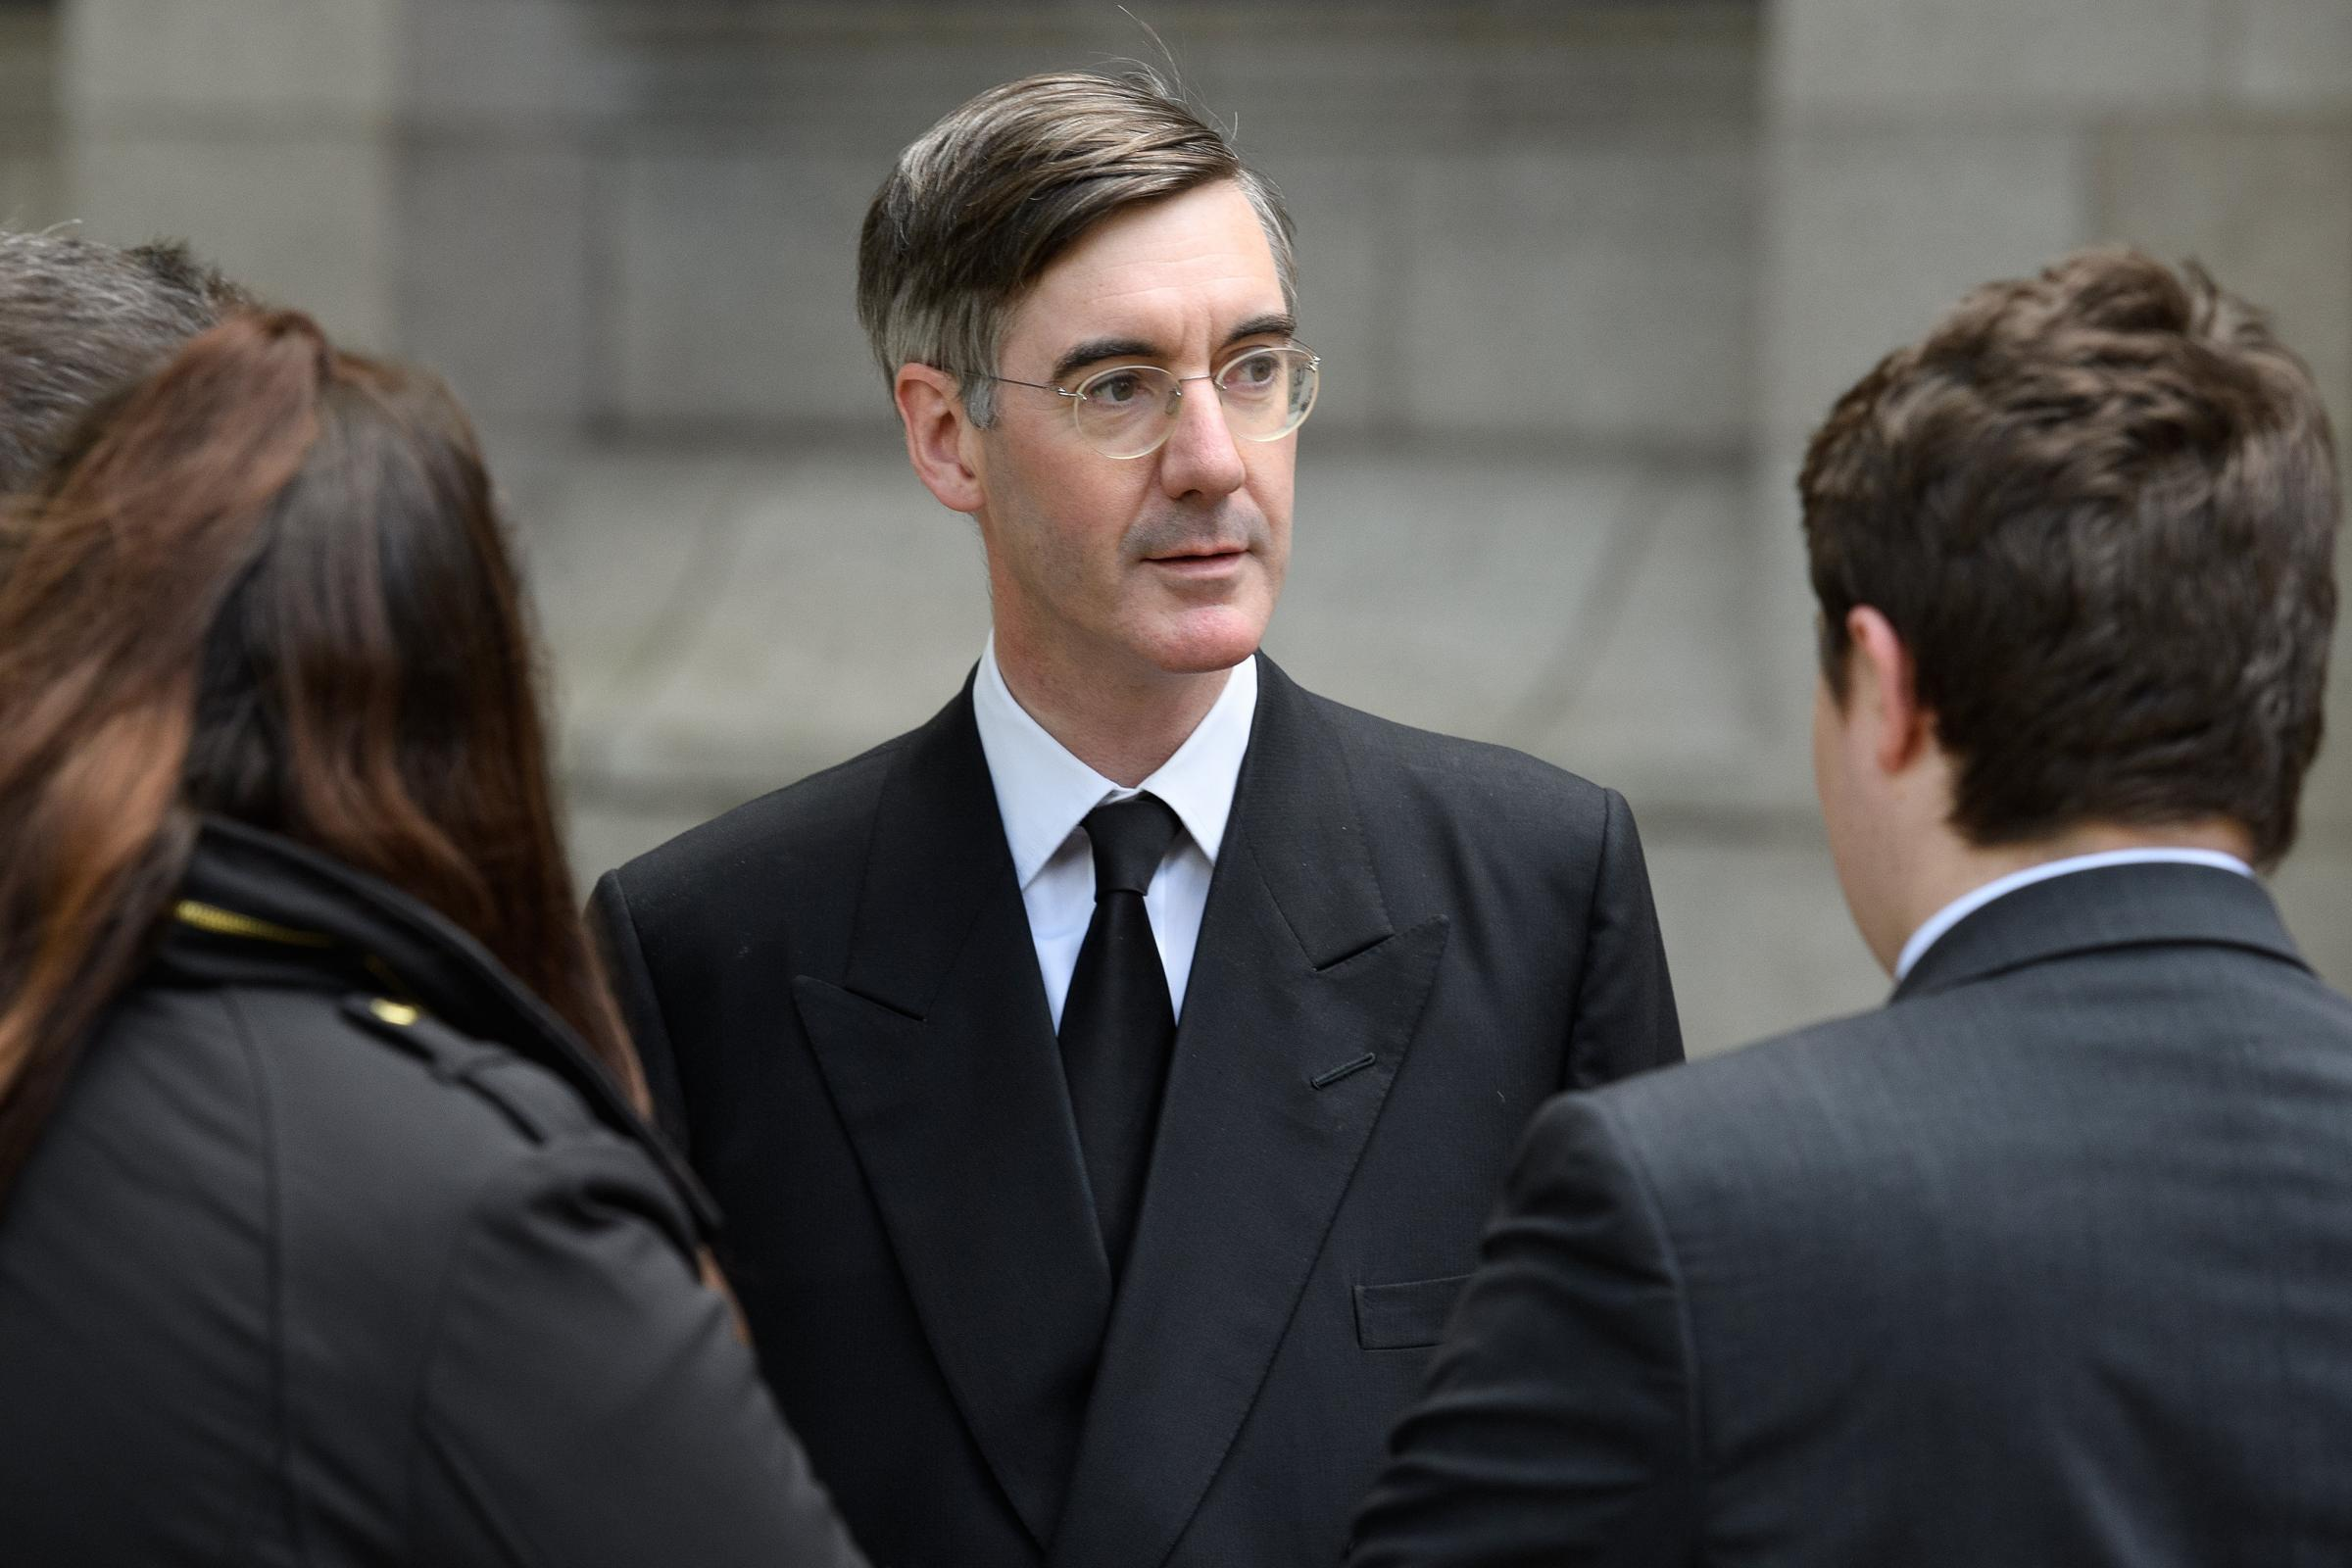 Jacob Rees-Mogg made the comments during a short tour of Scotland